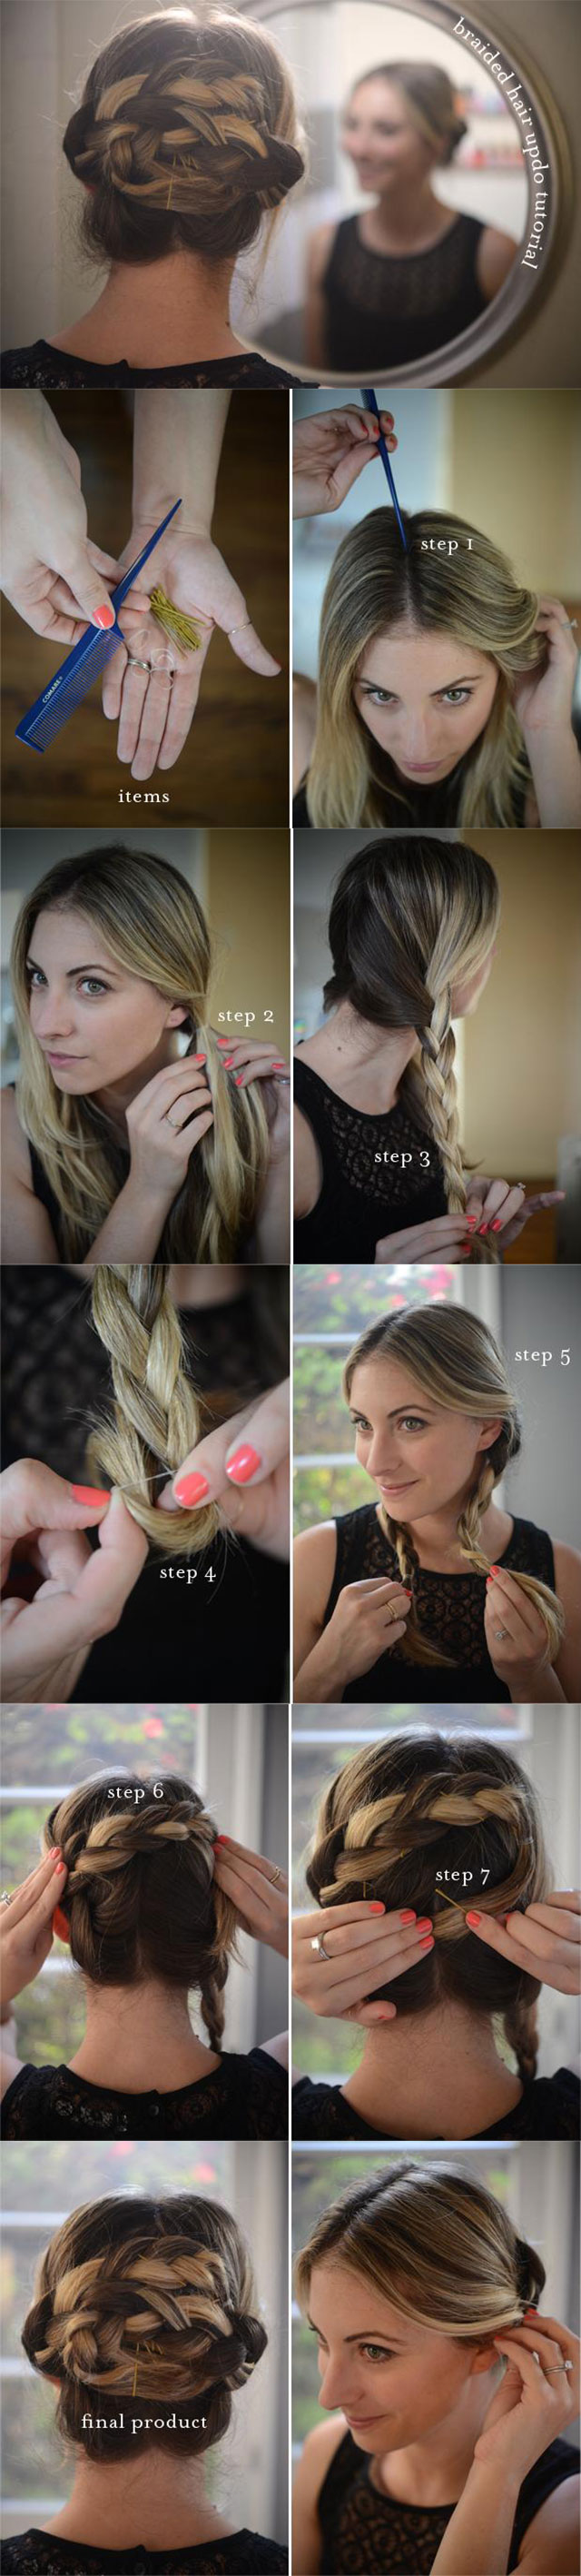 easy hairstyles you can easy braids to do on yourself DIY  Your Step by Step for the Best Cute Hairstyles   Fashion Diva